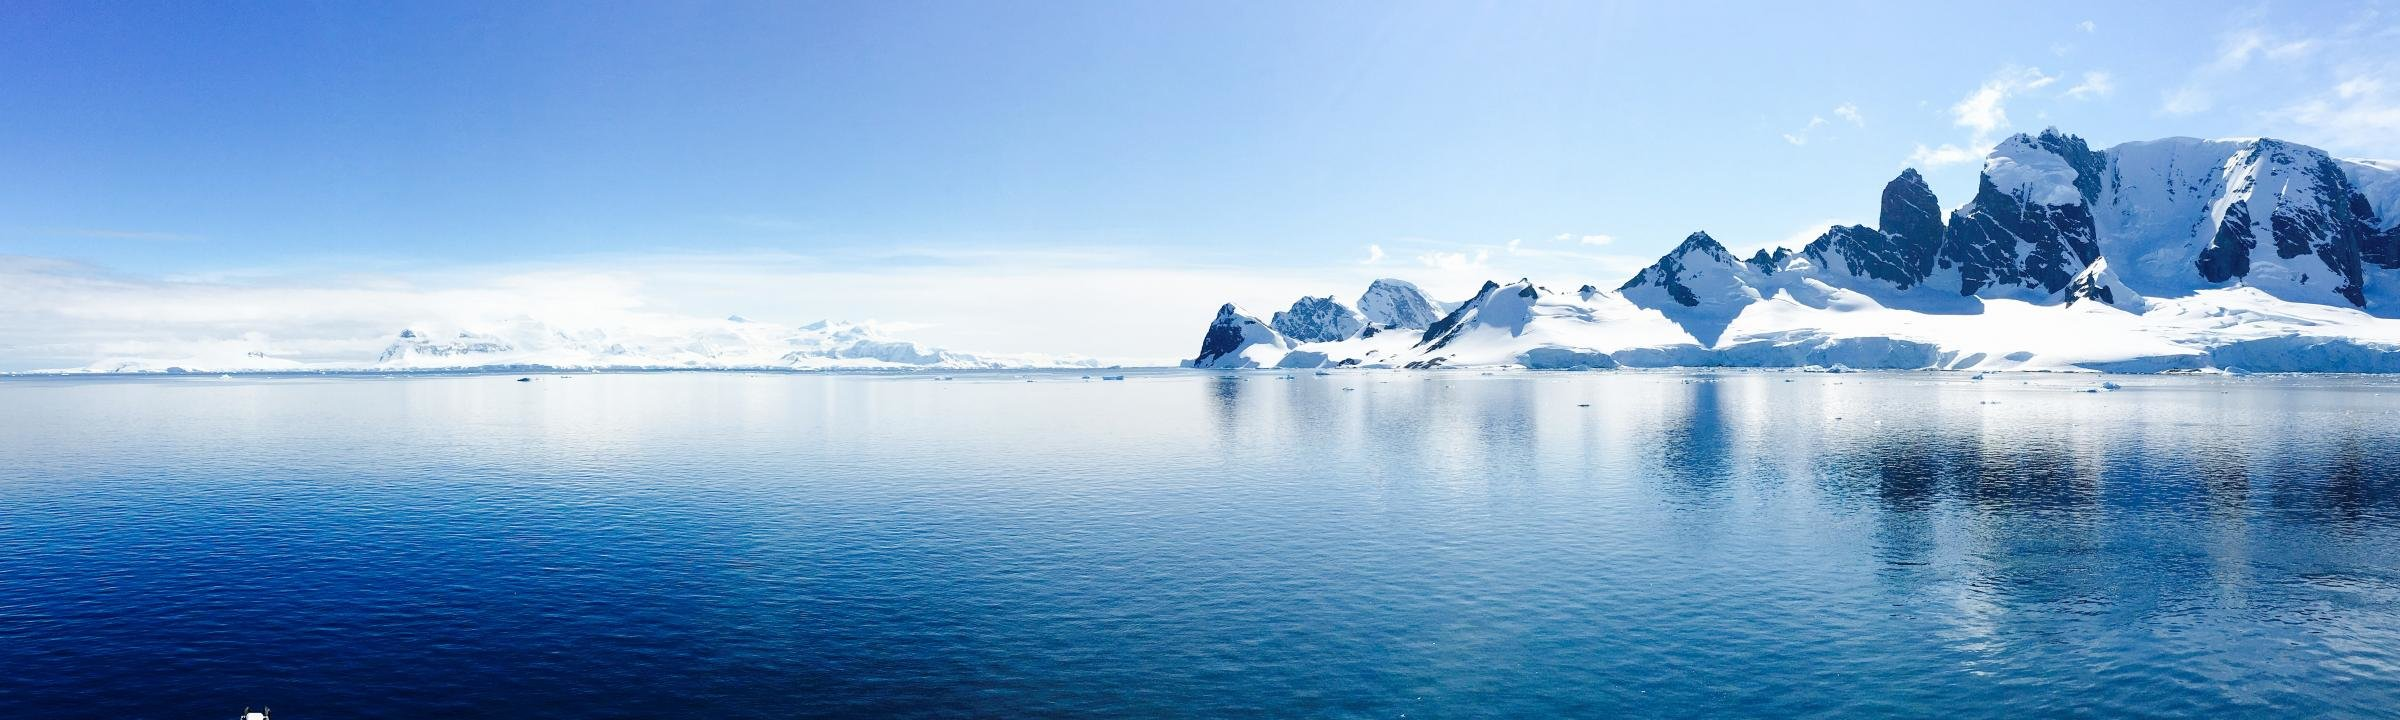 Download dual screen 2400x720 Antarctica computer background ID:294813 for free